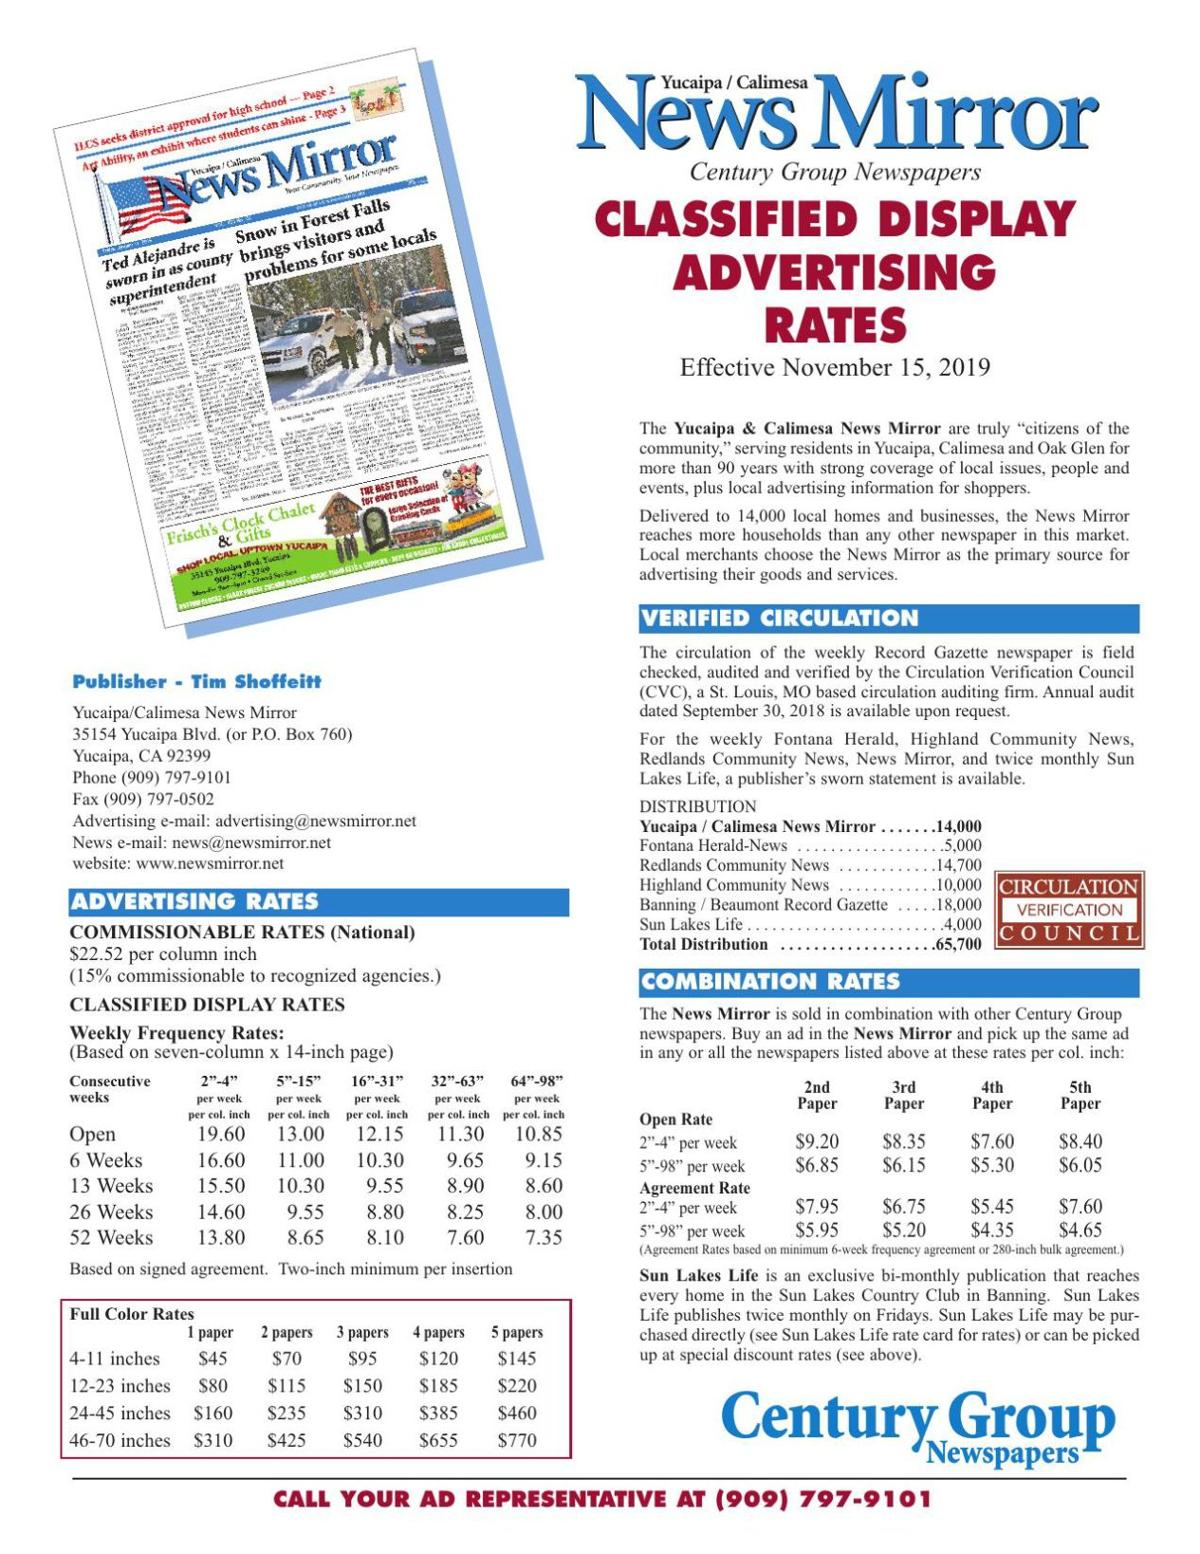 News Mirror - Classified Display Rates